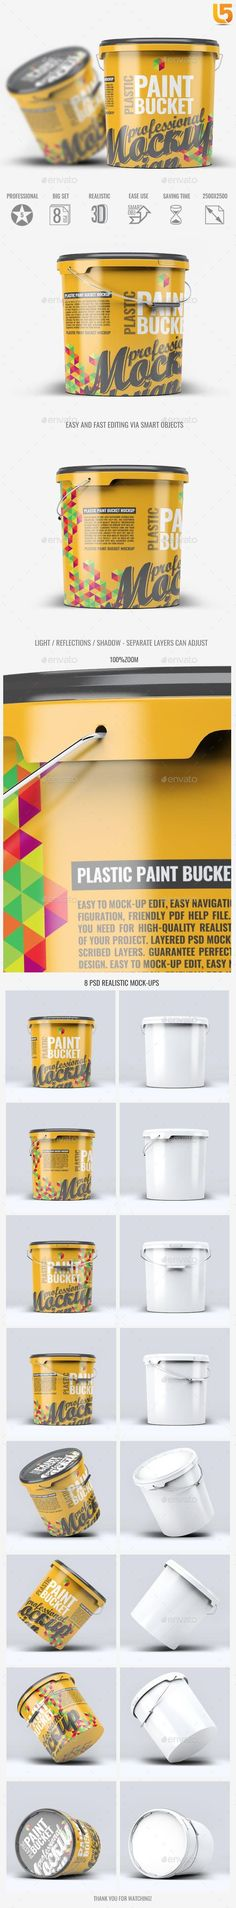 Buy Plastic Paint Bucket Mock-Up by on GraphicRiver. Plastic Paint Bucket Mock-Up Features 8 Photorealistic presentations Photoshop CS or higher compatible PSD files Reso. Box Mockup, Mockup Templates, Paint Buckets, Painting Plastic, Photoshop Actions, Lightroom Presets, 3 D, Packaging, Branding